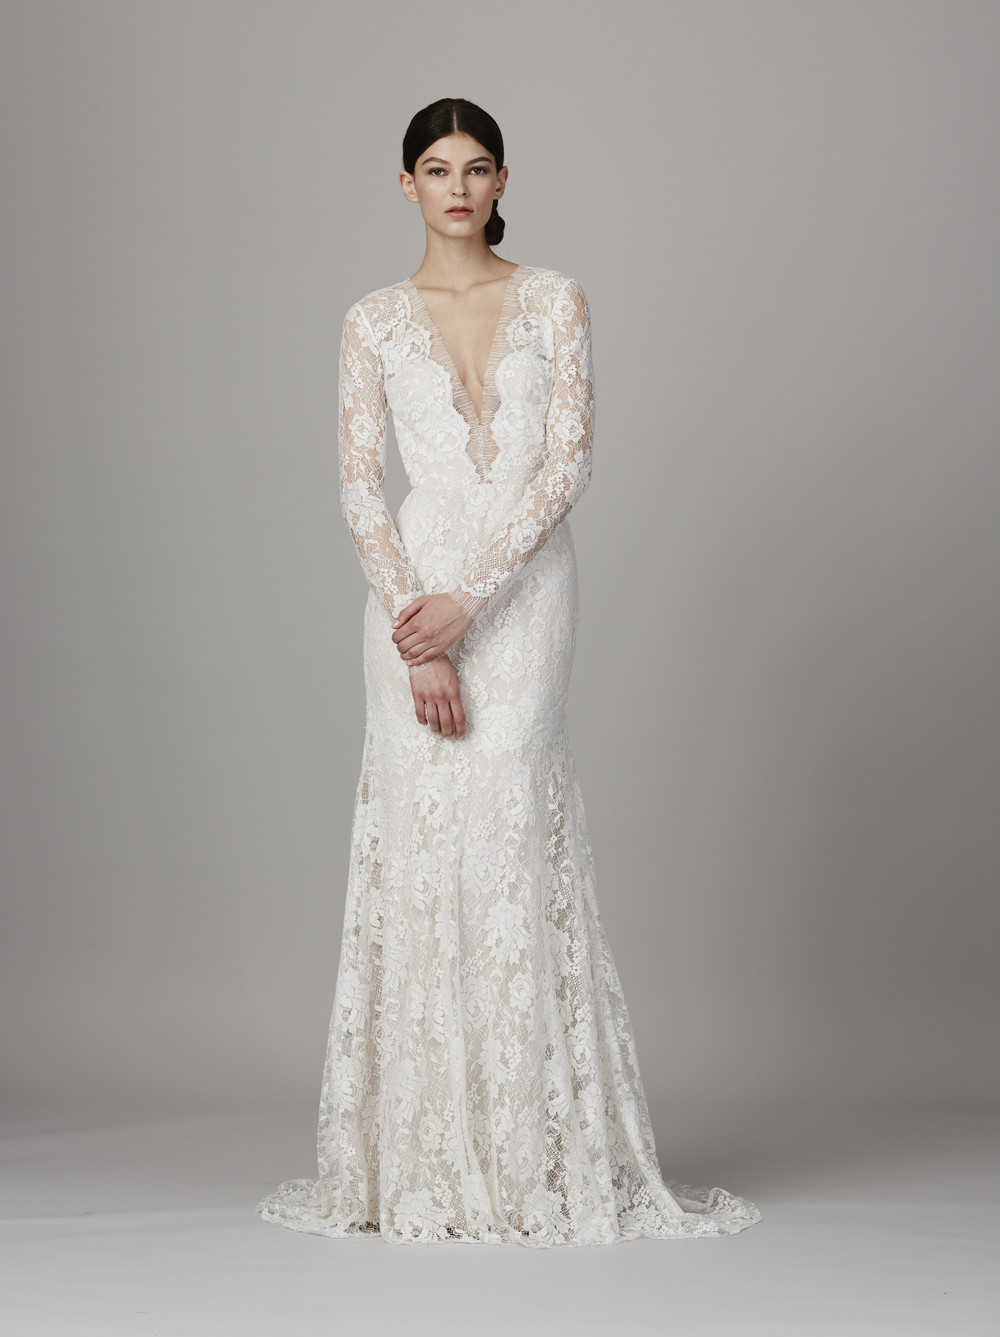 Affordable Bridal S Denver Co : Lela rose now at little white dress